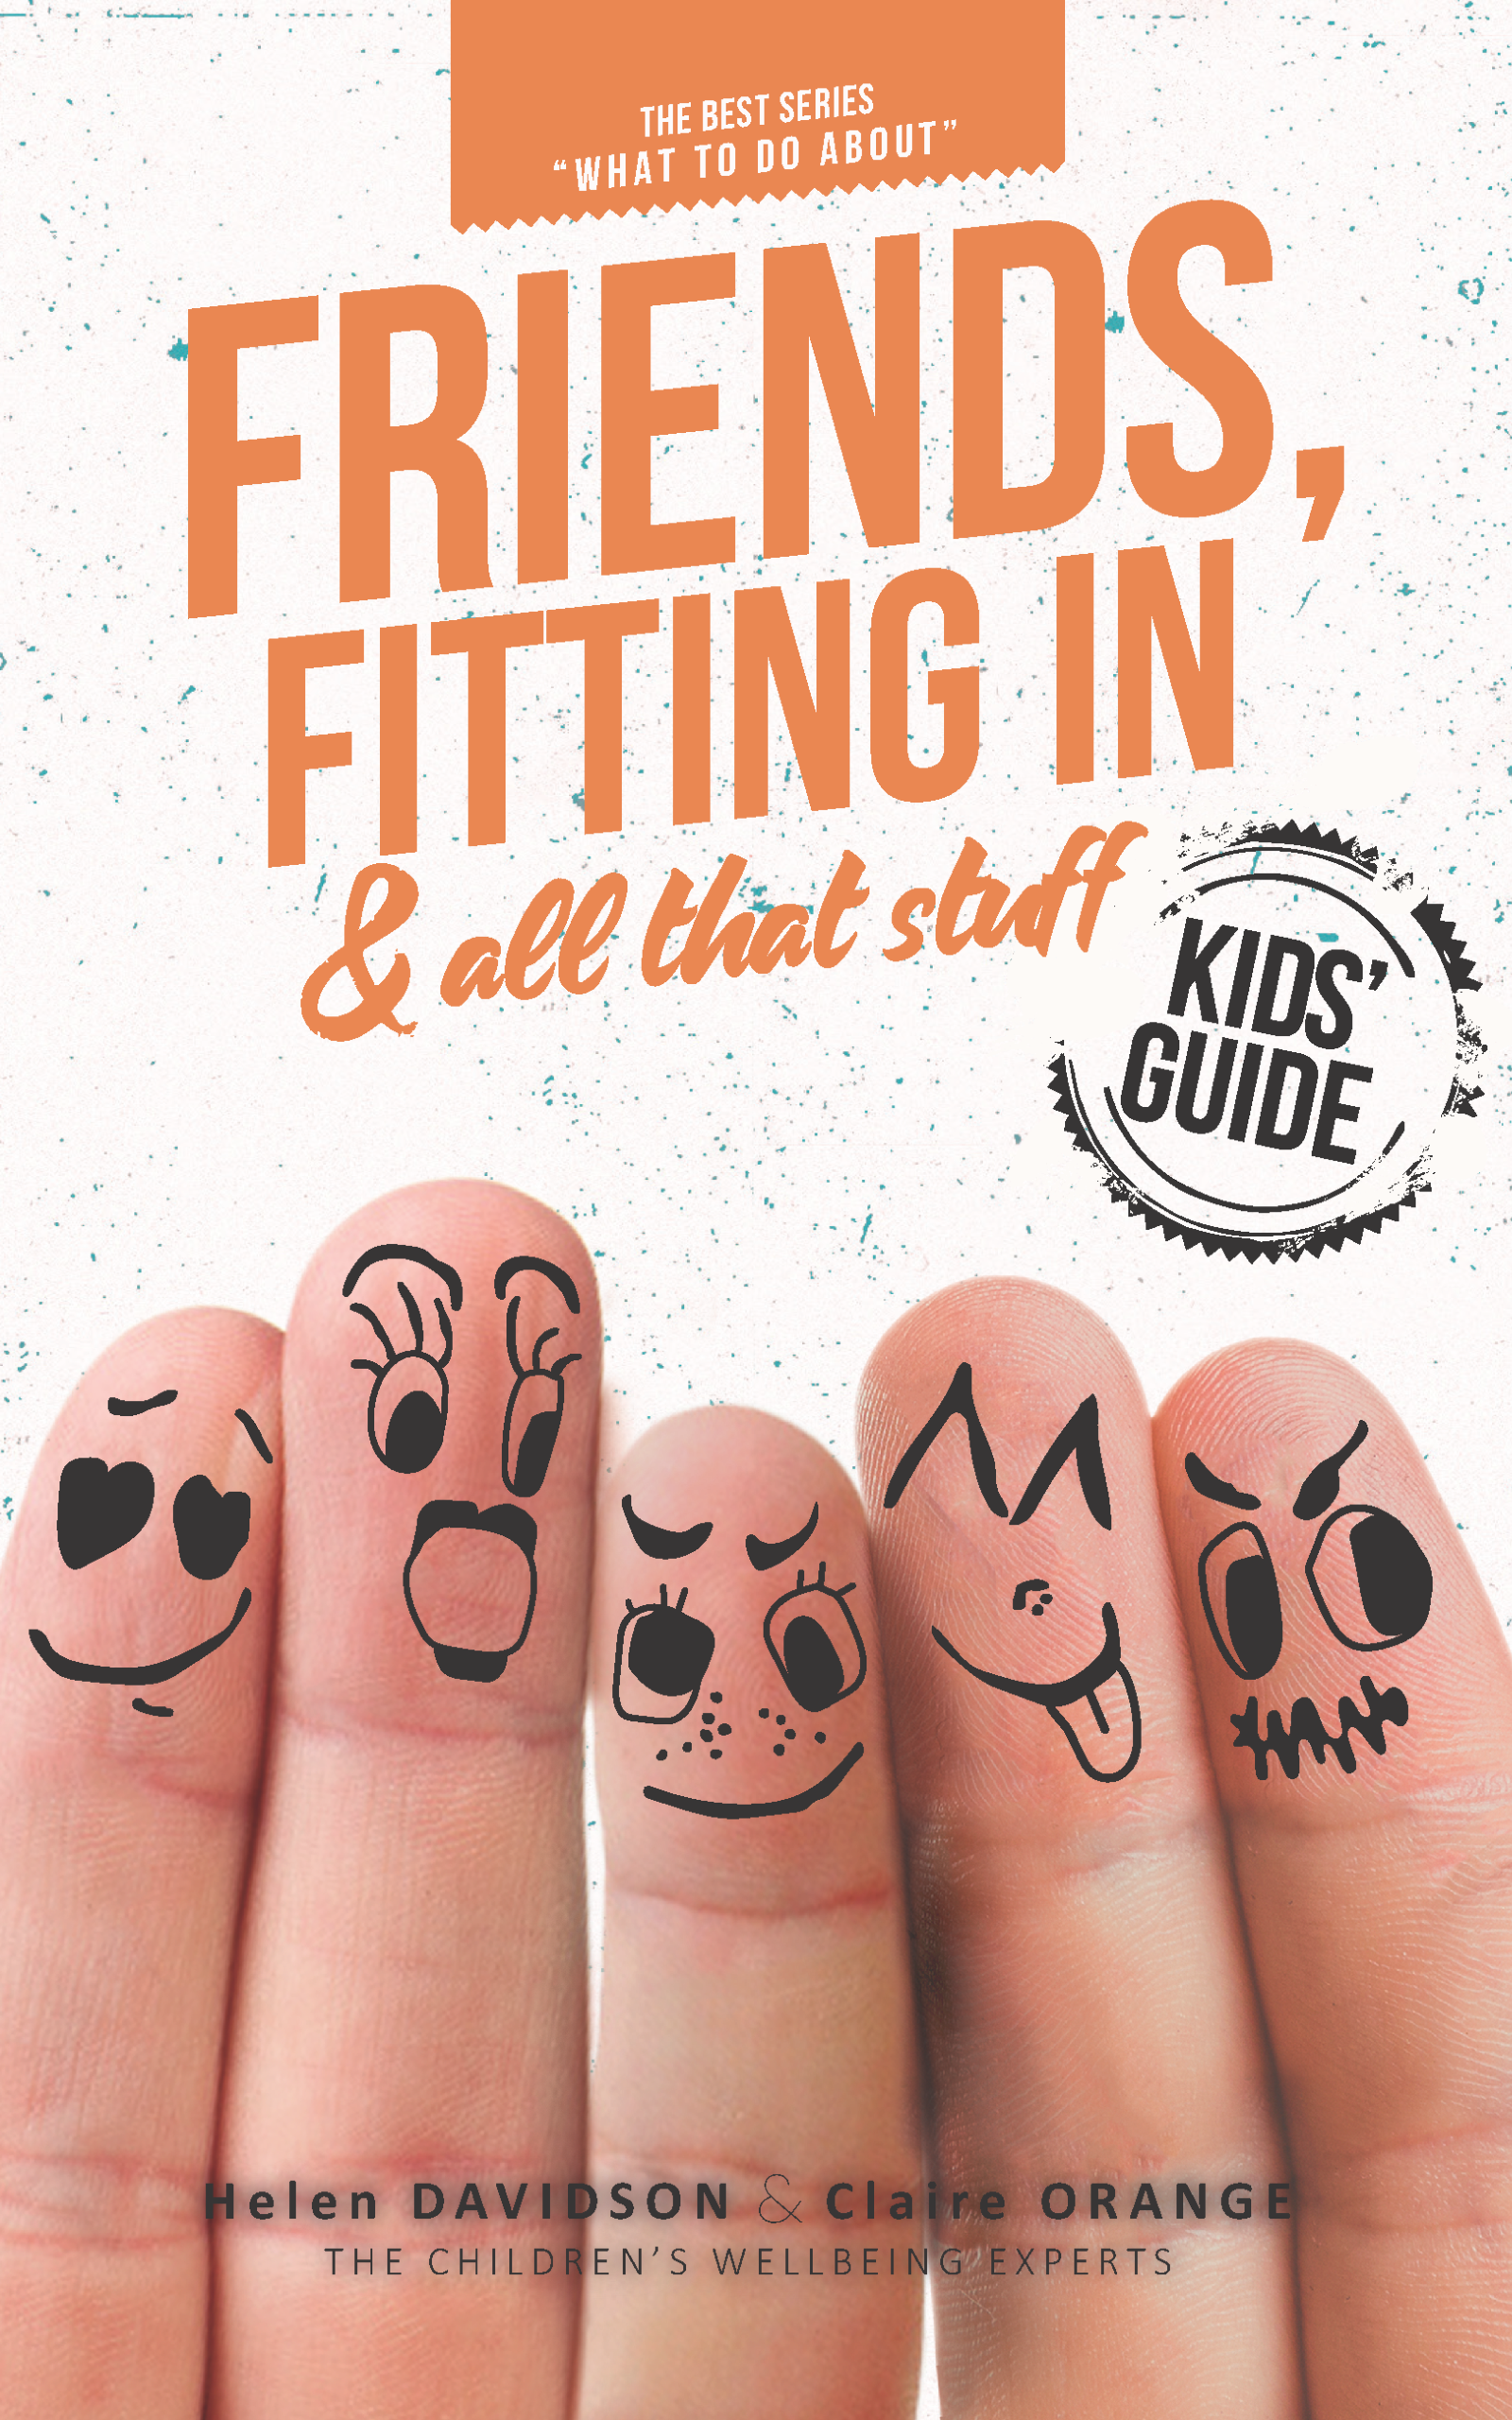 WHAT TO DO ABOUT FRIENDS, FITTING IN & ALL THAT STUFF